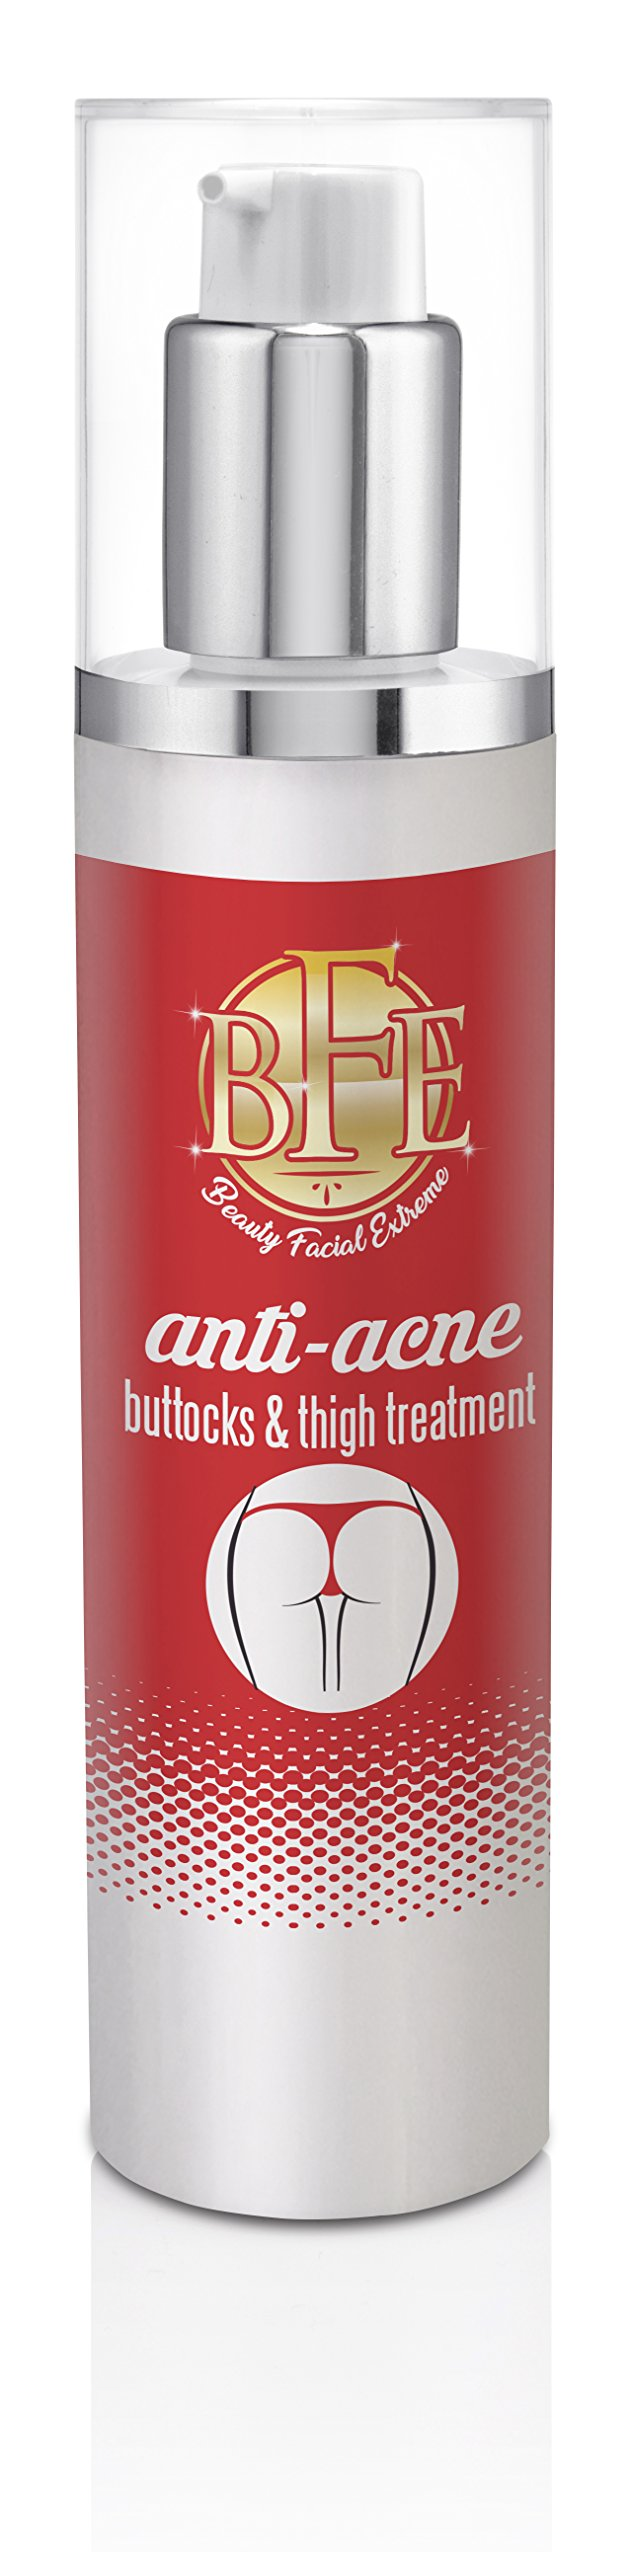 Anti-Acne Buttocks & Thigh Treatment- Clears Away Acne, Pimples, and Ingrown Hairs for the Buttocks and Thigh Area. Prevents Future Breakouts. by Beauty Facial Extreme